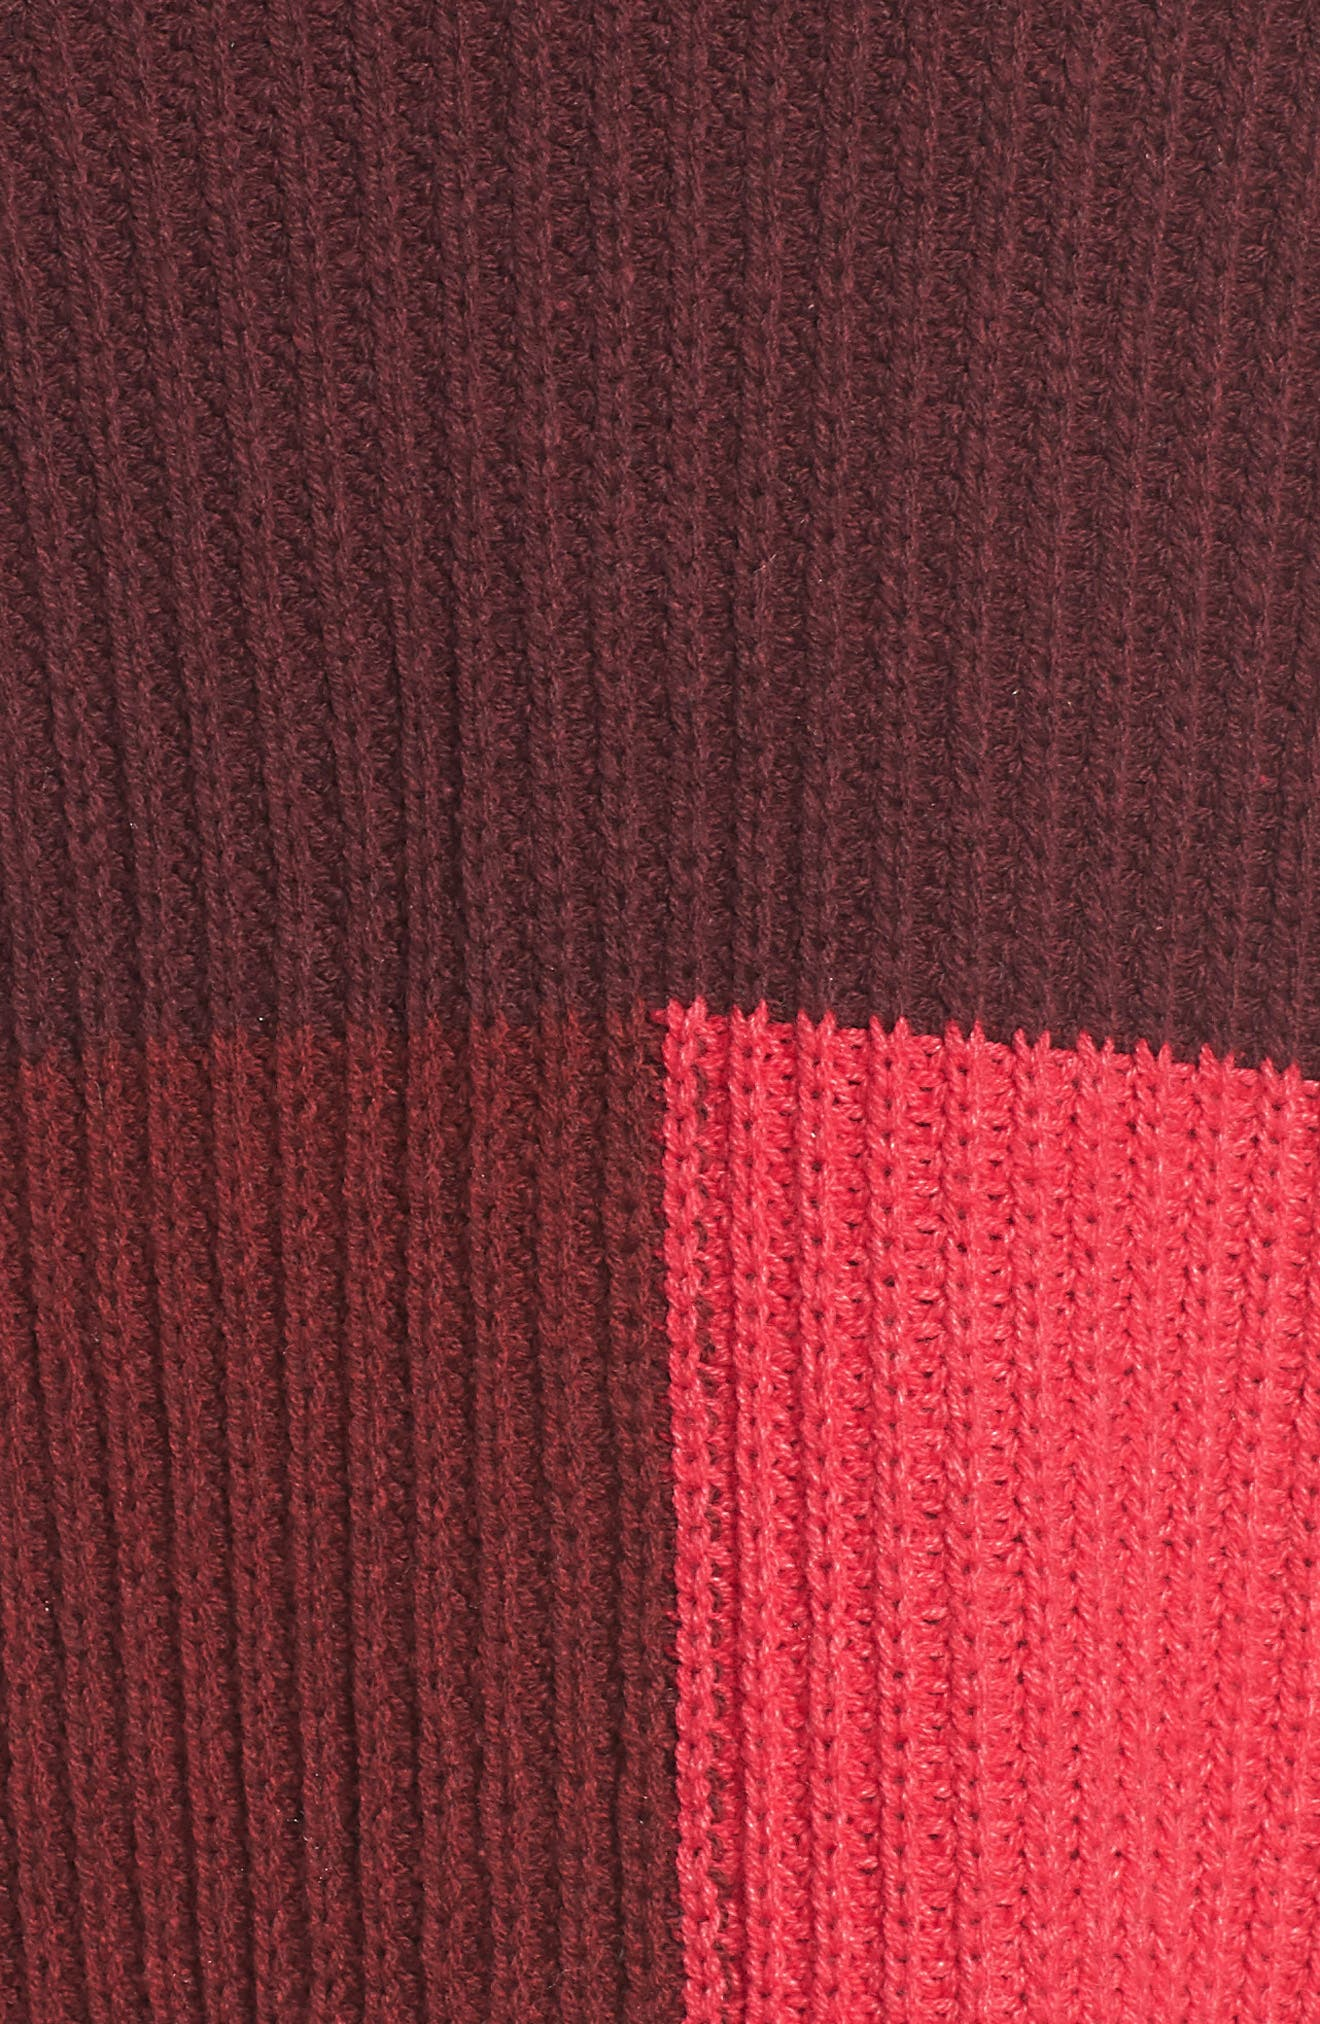 Mock Neck Colorblock Sweater,                             Alternate thumbnail 5, color,                             Red Rumba Colorblock